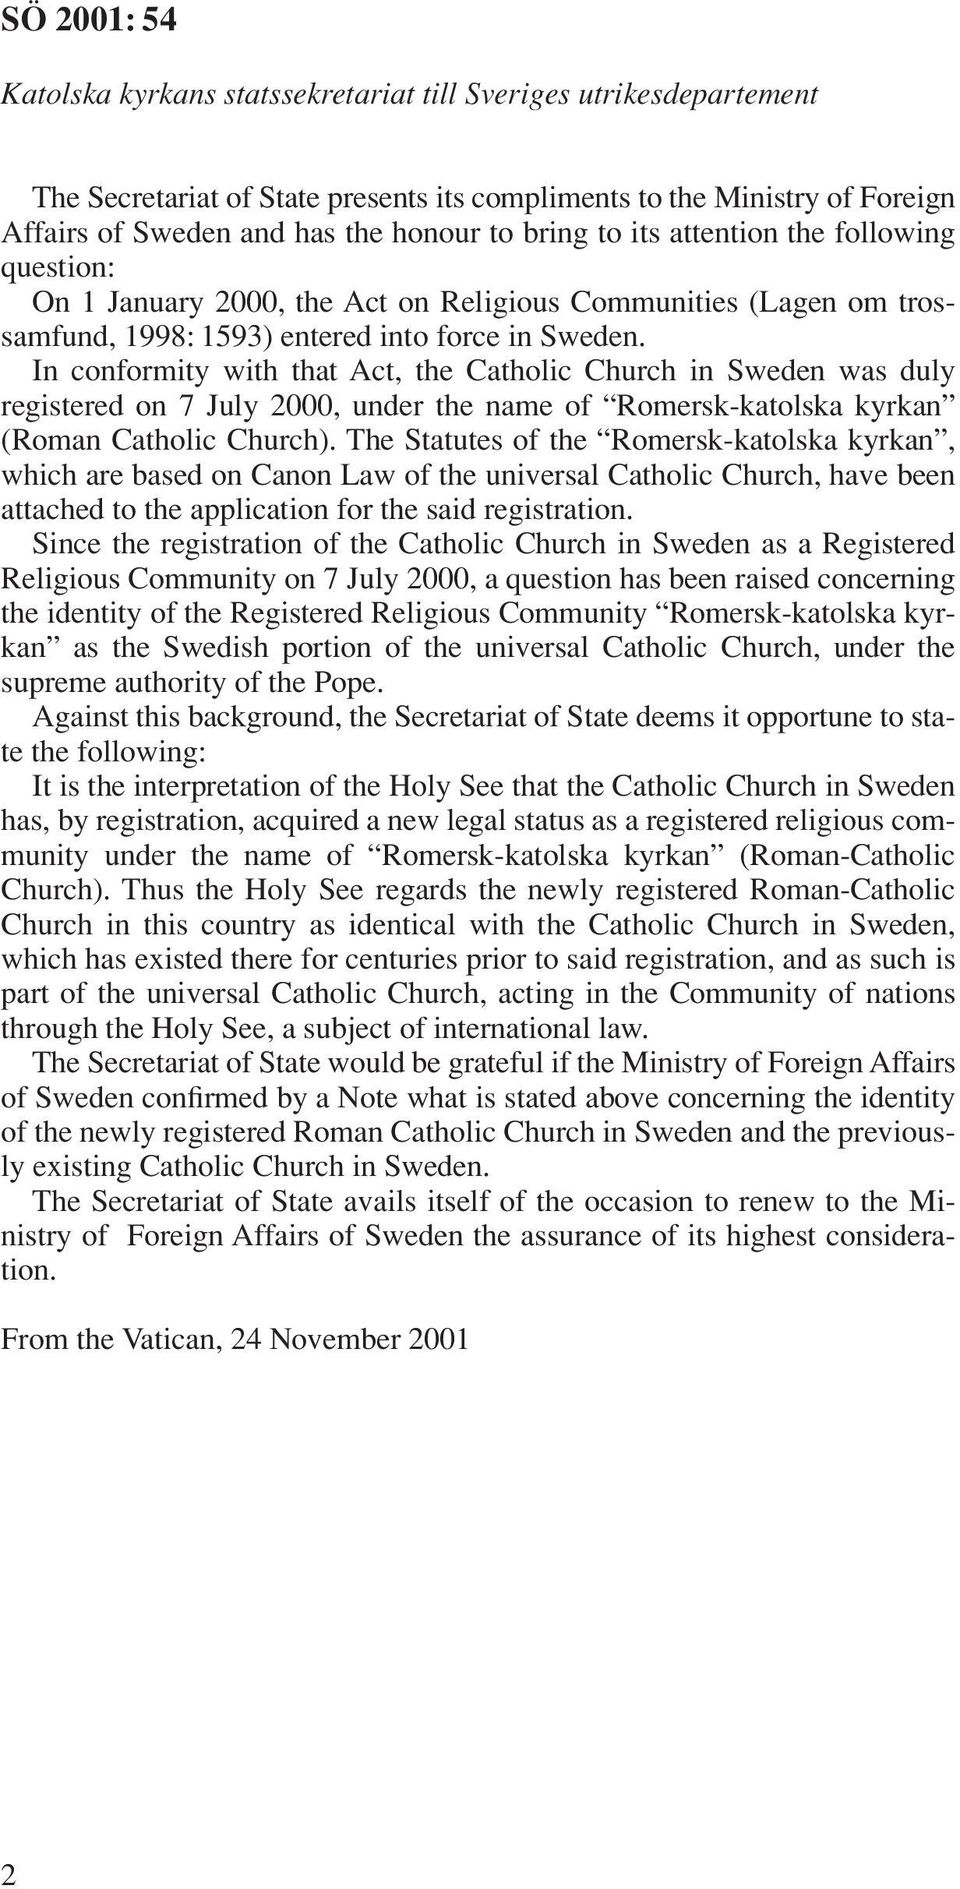 In conformity with that Act, the Catholic Church in Sweden was duly registered on 7 July 2000, under the name of Romersk-katolska kyrkan (Roman Catholic Church).